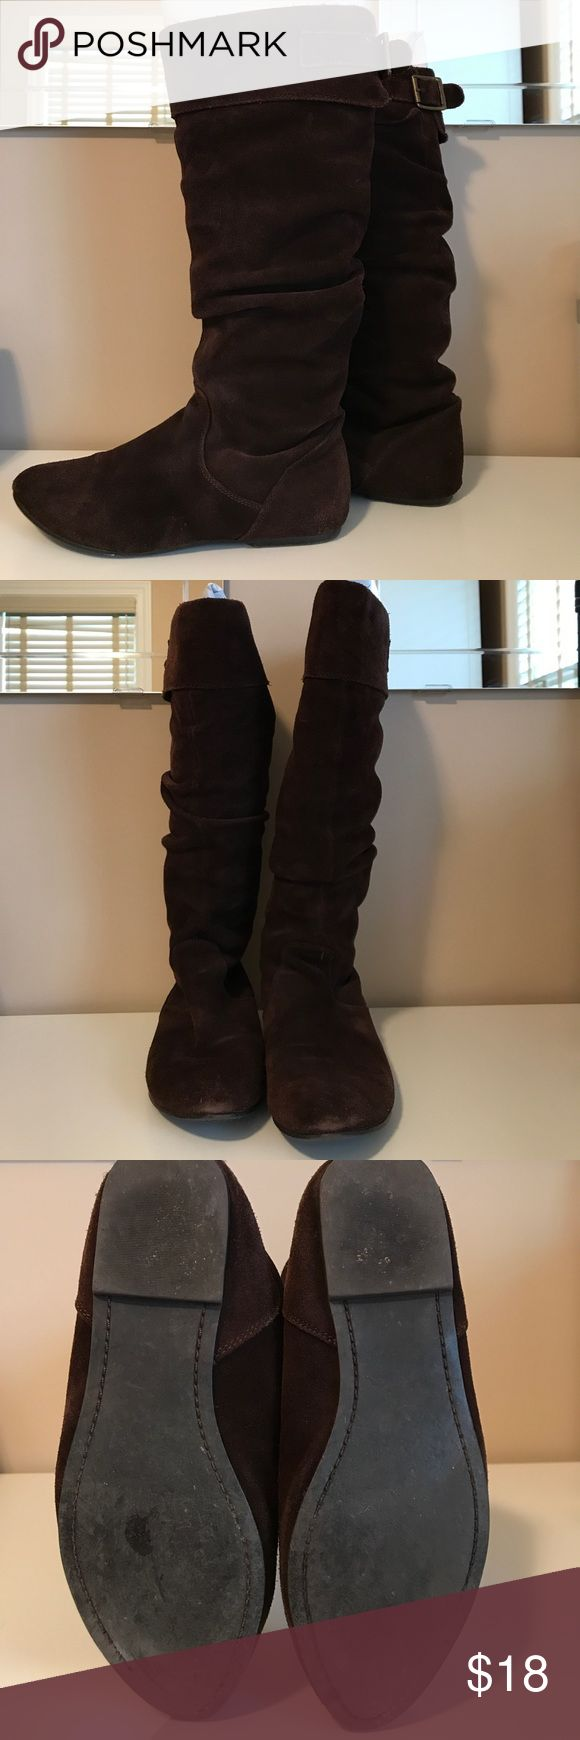 Steve Madden suede flat knee high boots Brown suede flat knee high boots. Bronze buckle accent on back. Pointed toe. Steve Madden Shoes Over the Knee Boots